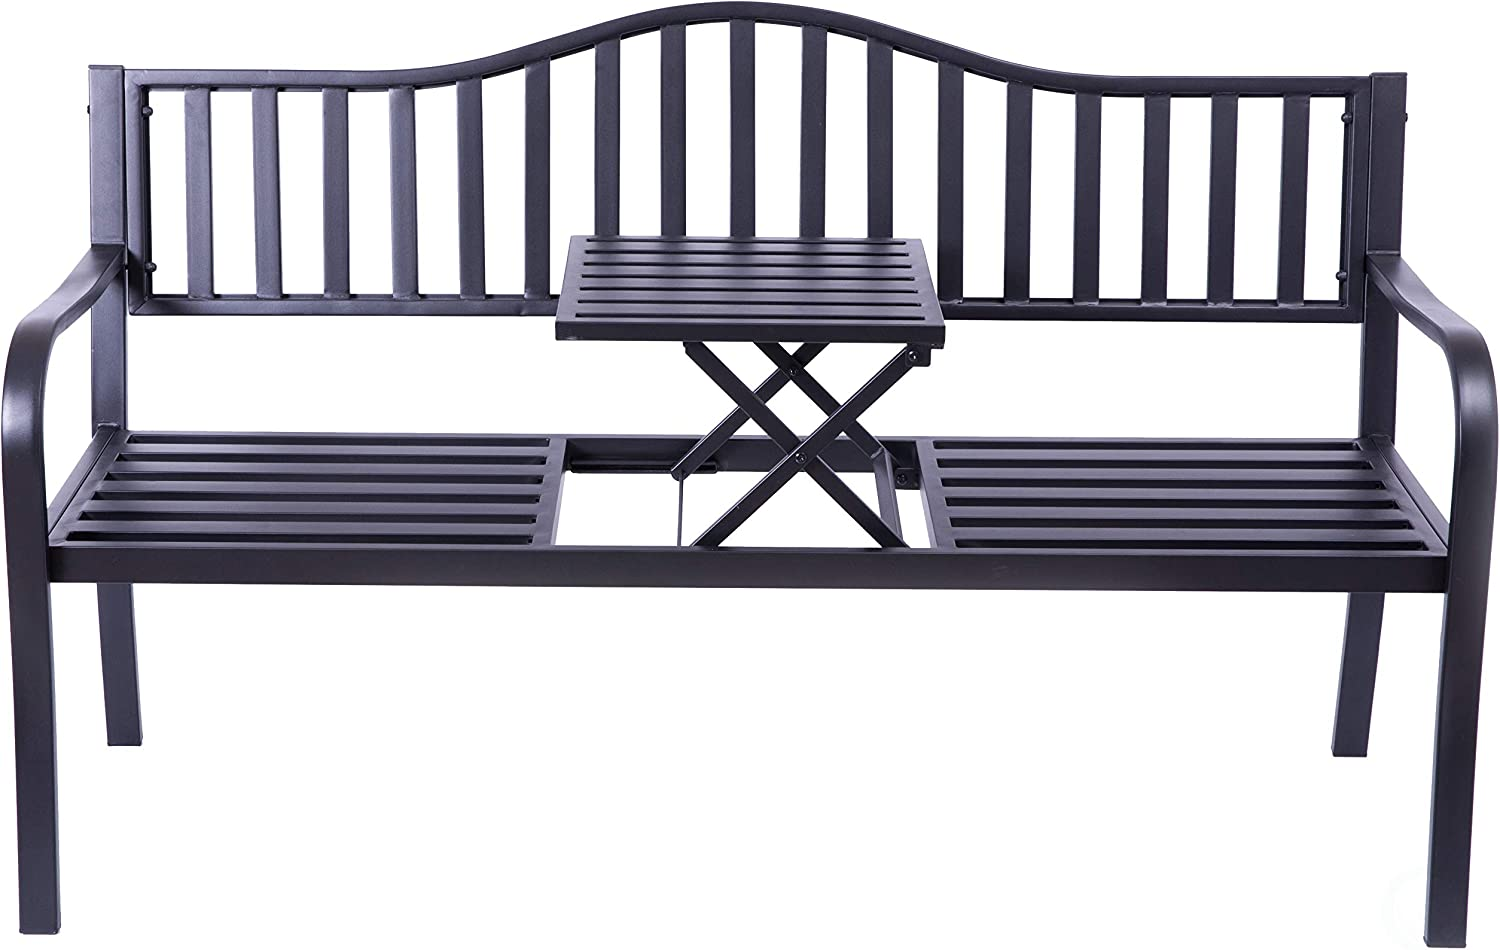 Gardenised QI003461L Powder Coated Black Steel Patio Garden Park Yard Bench with Middle Tab